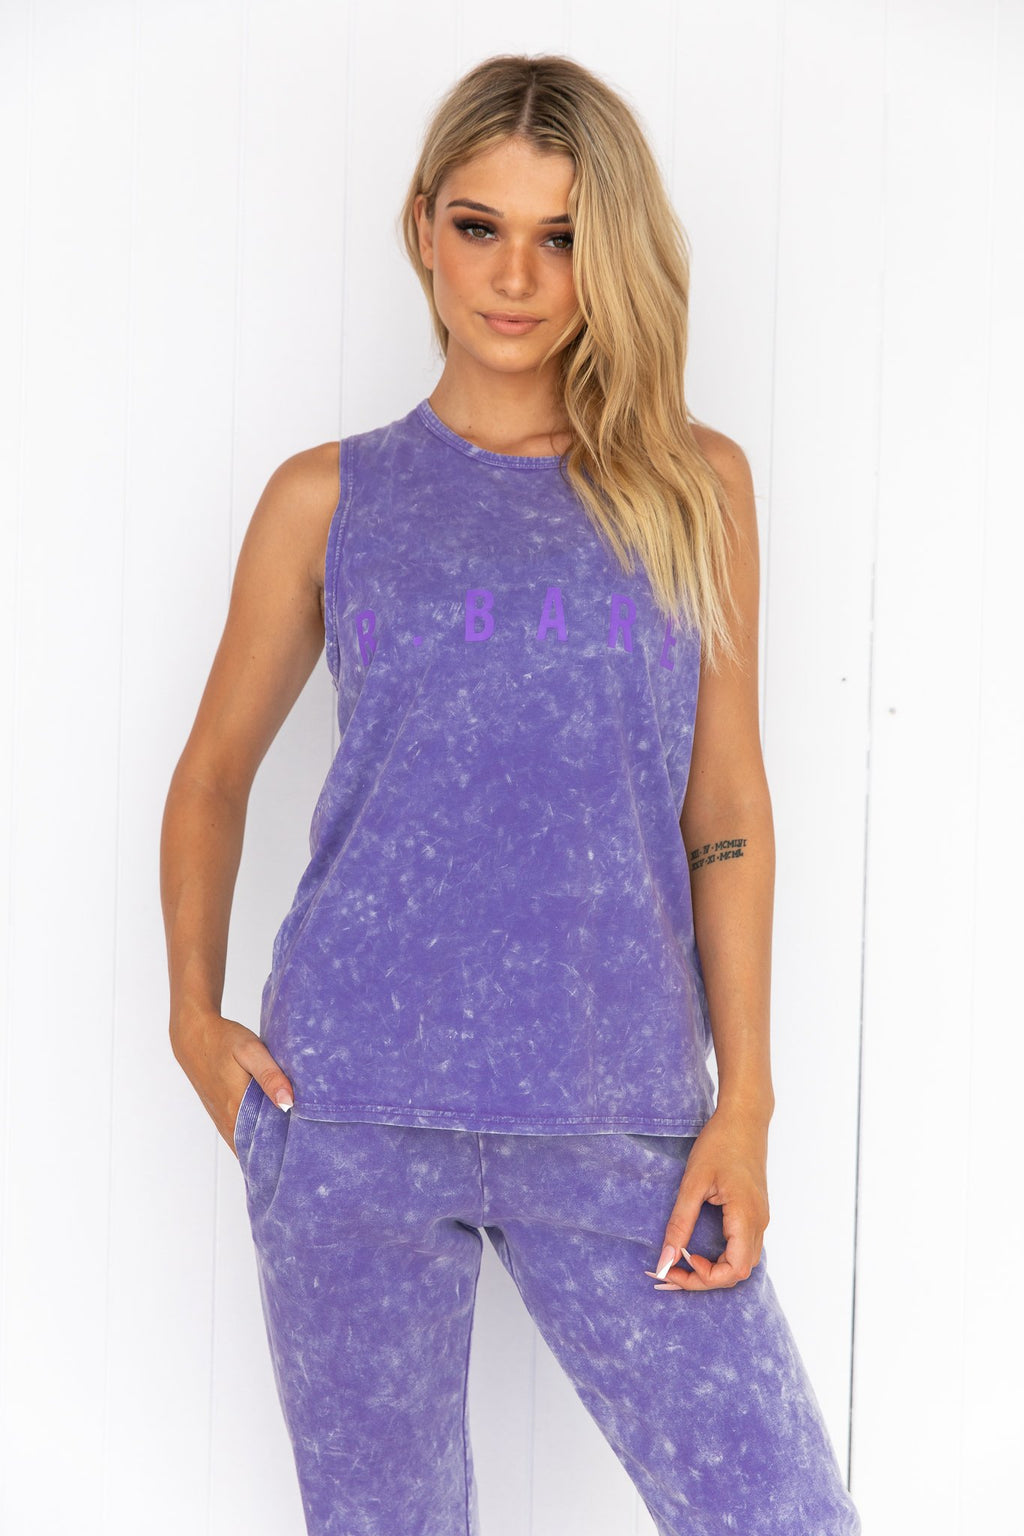 Easy Rider Muscle Tank - Aster-Marl